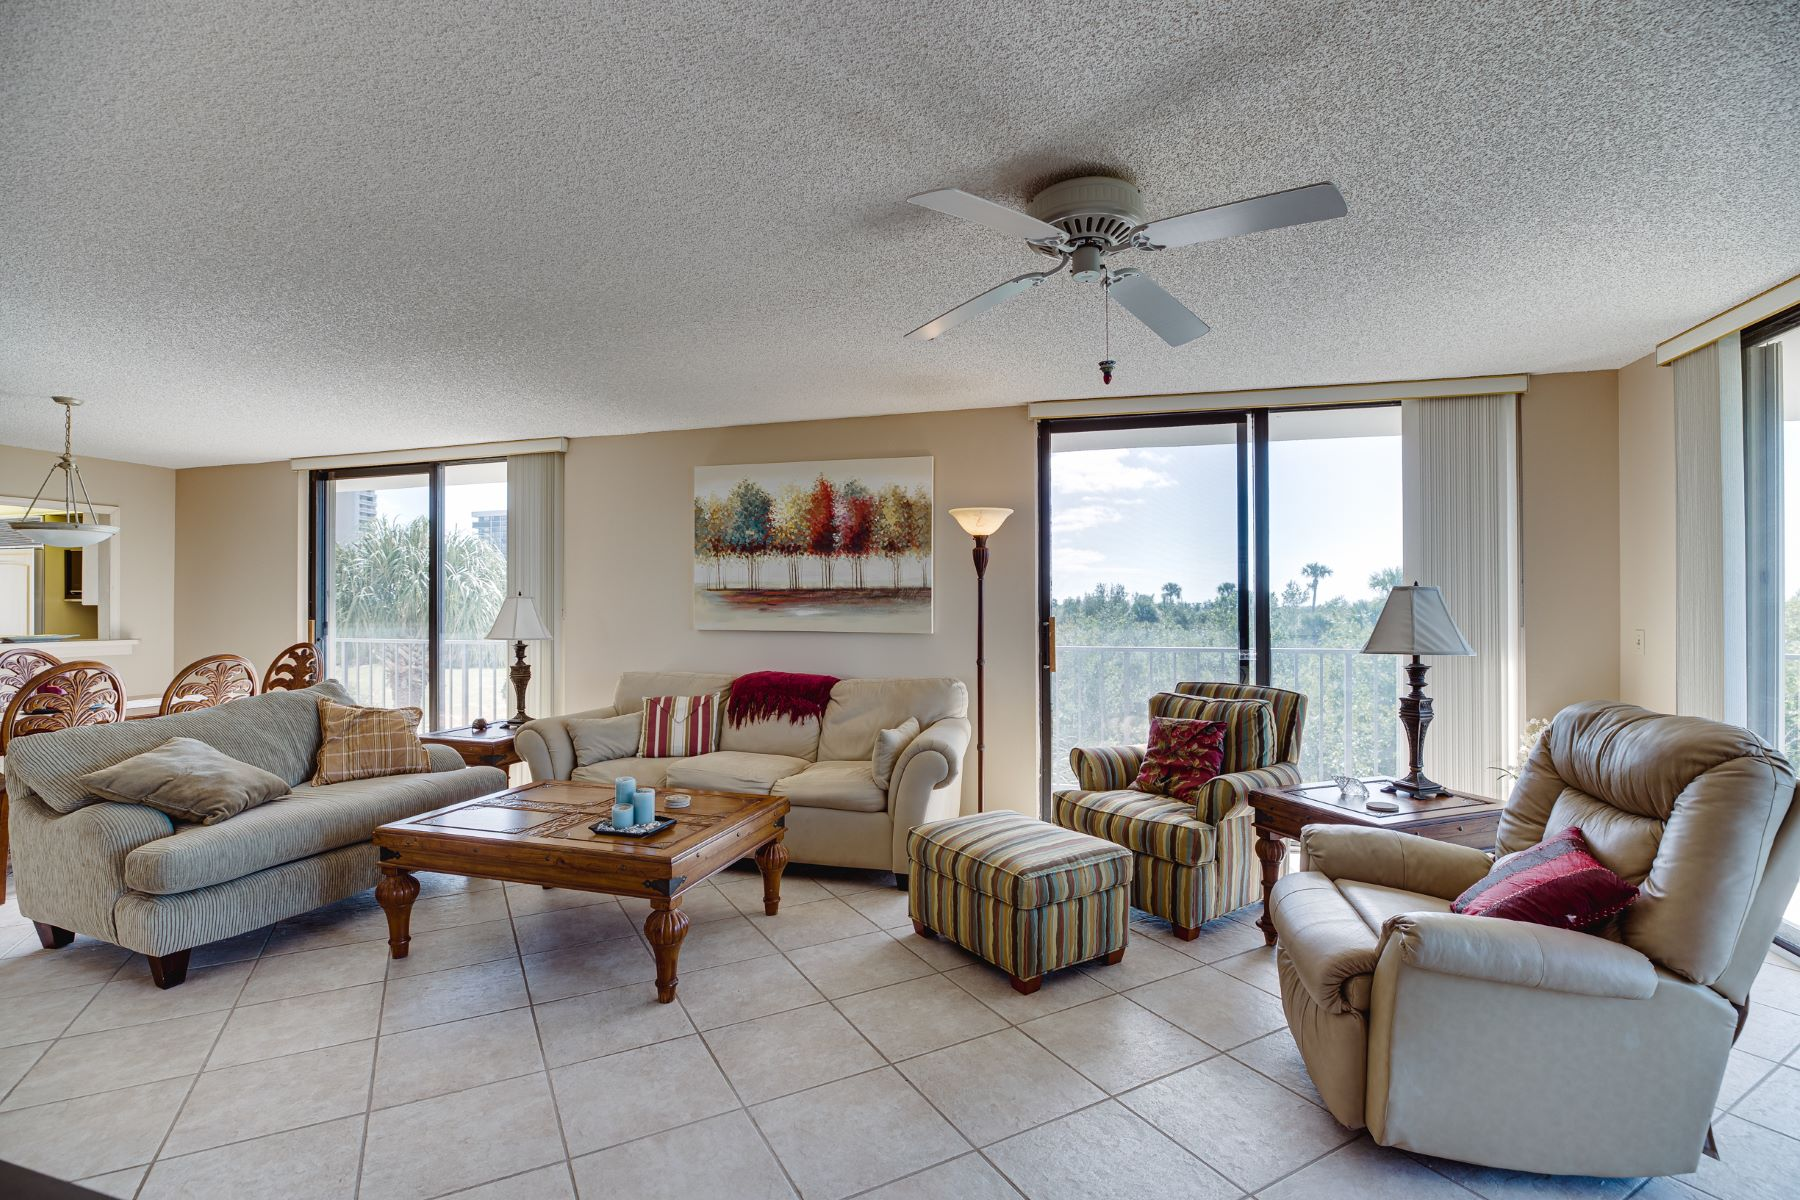 Additional photo for property listing at 5059 N Hwy Highway A1A 301 Fort Pierce, Florida 34950 United States